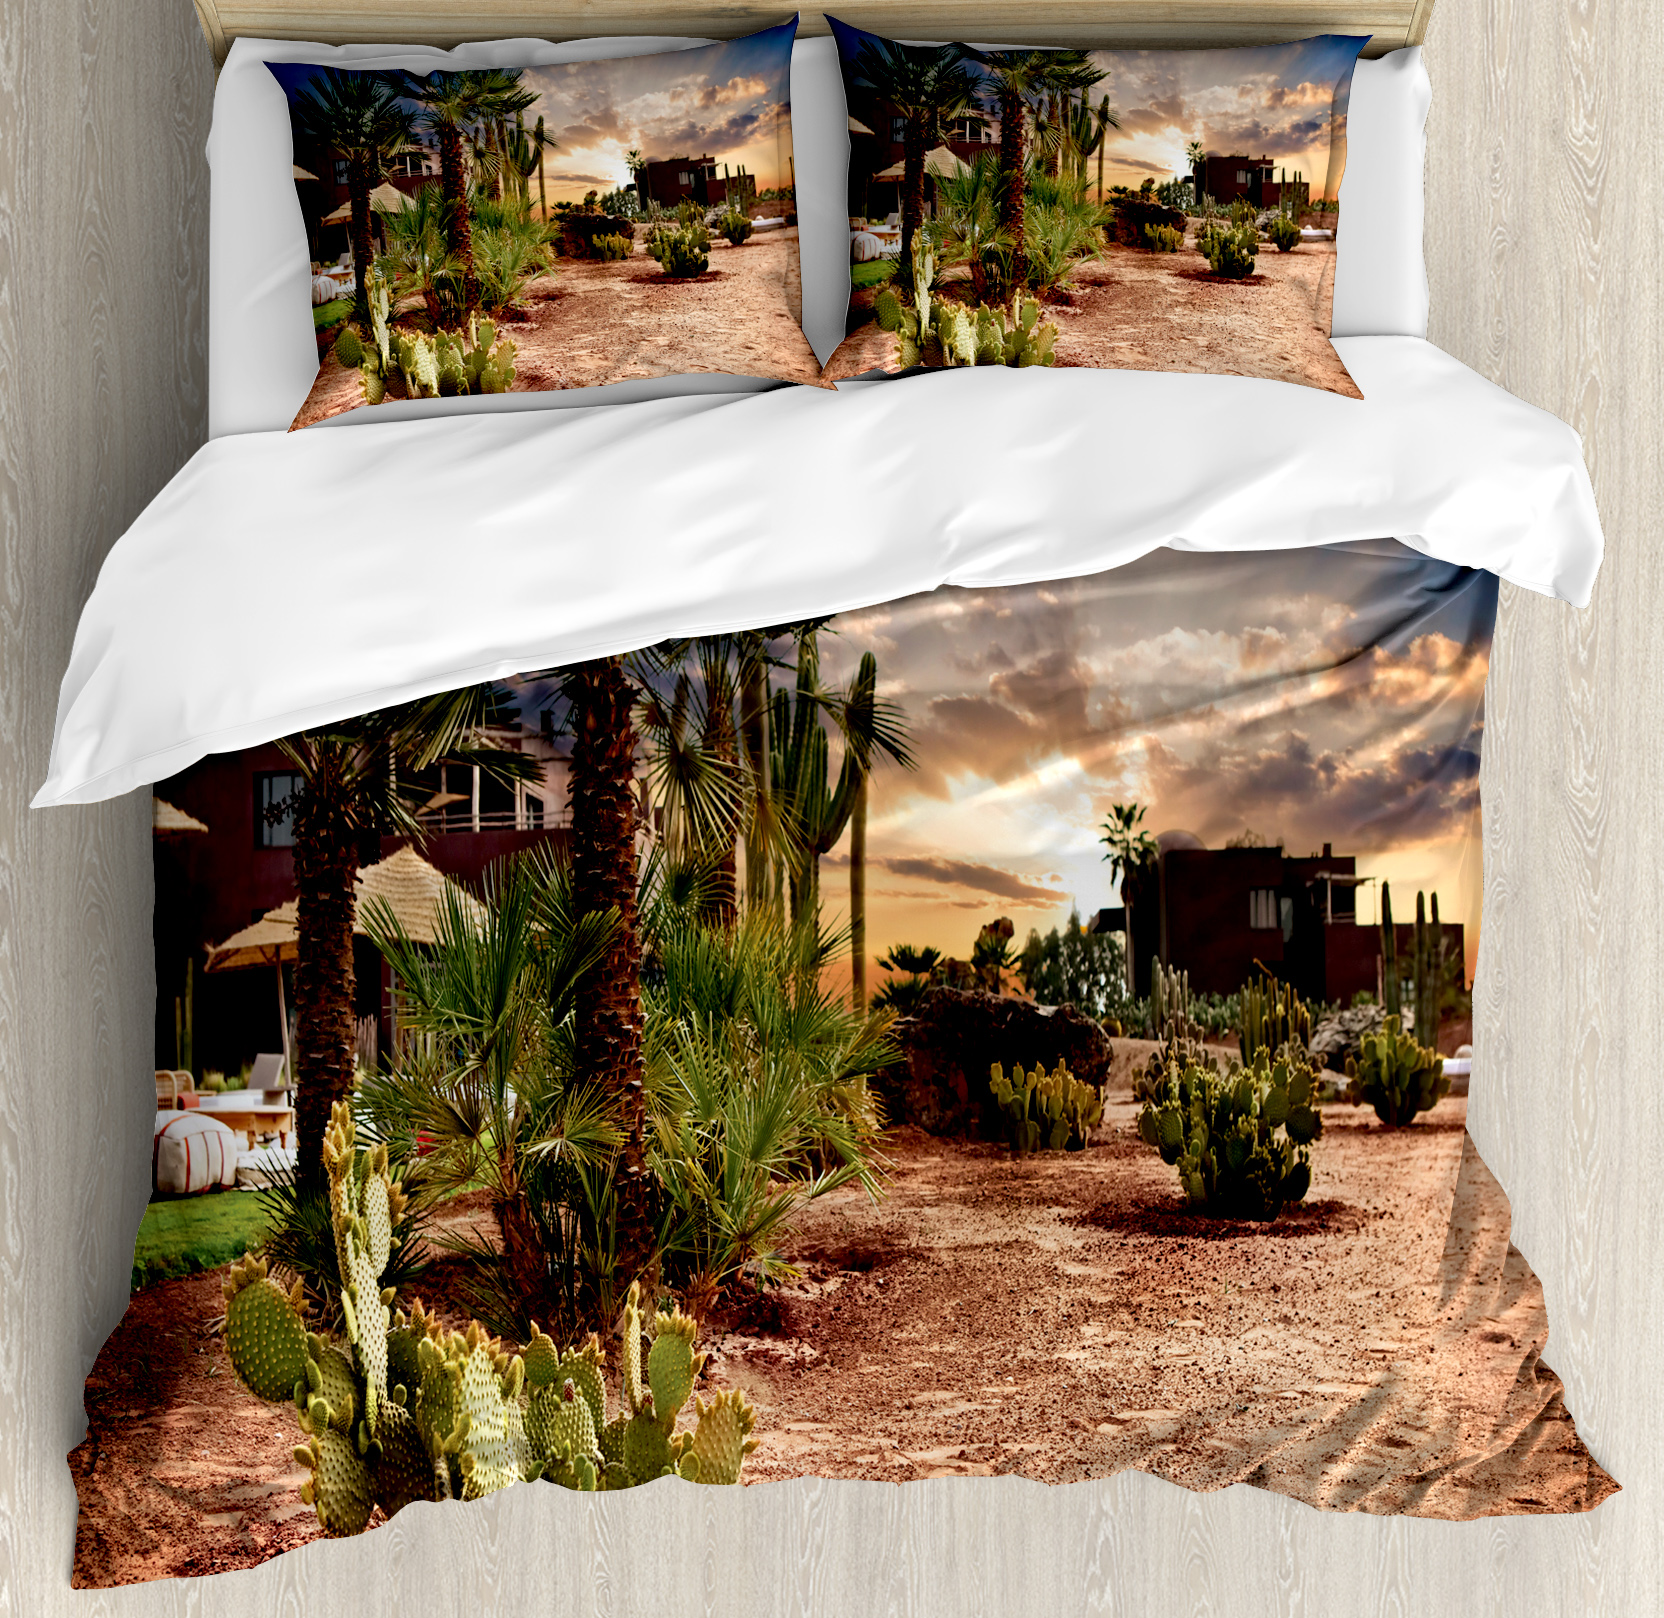 Desert Queen Size Duvet Cover Set, Majestic Sky View Palm Trees and Cactus in Oasis Morocco Tropic Nature, Decorative 3 Piece Bedding Set with 2 Pillow Shams, Blue Green Pale Brown, by Ambesonne